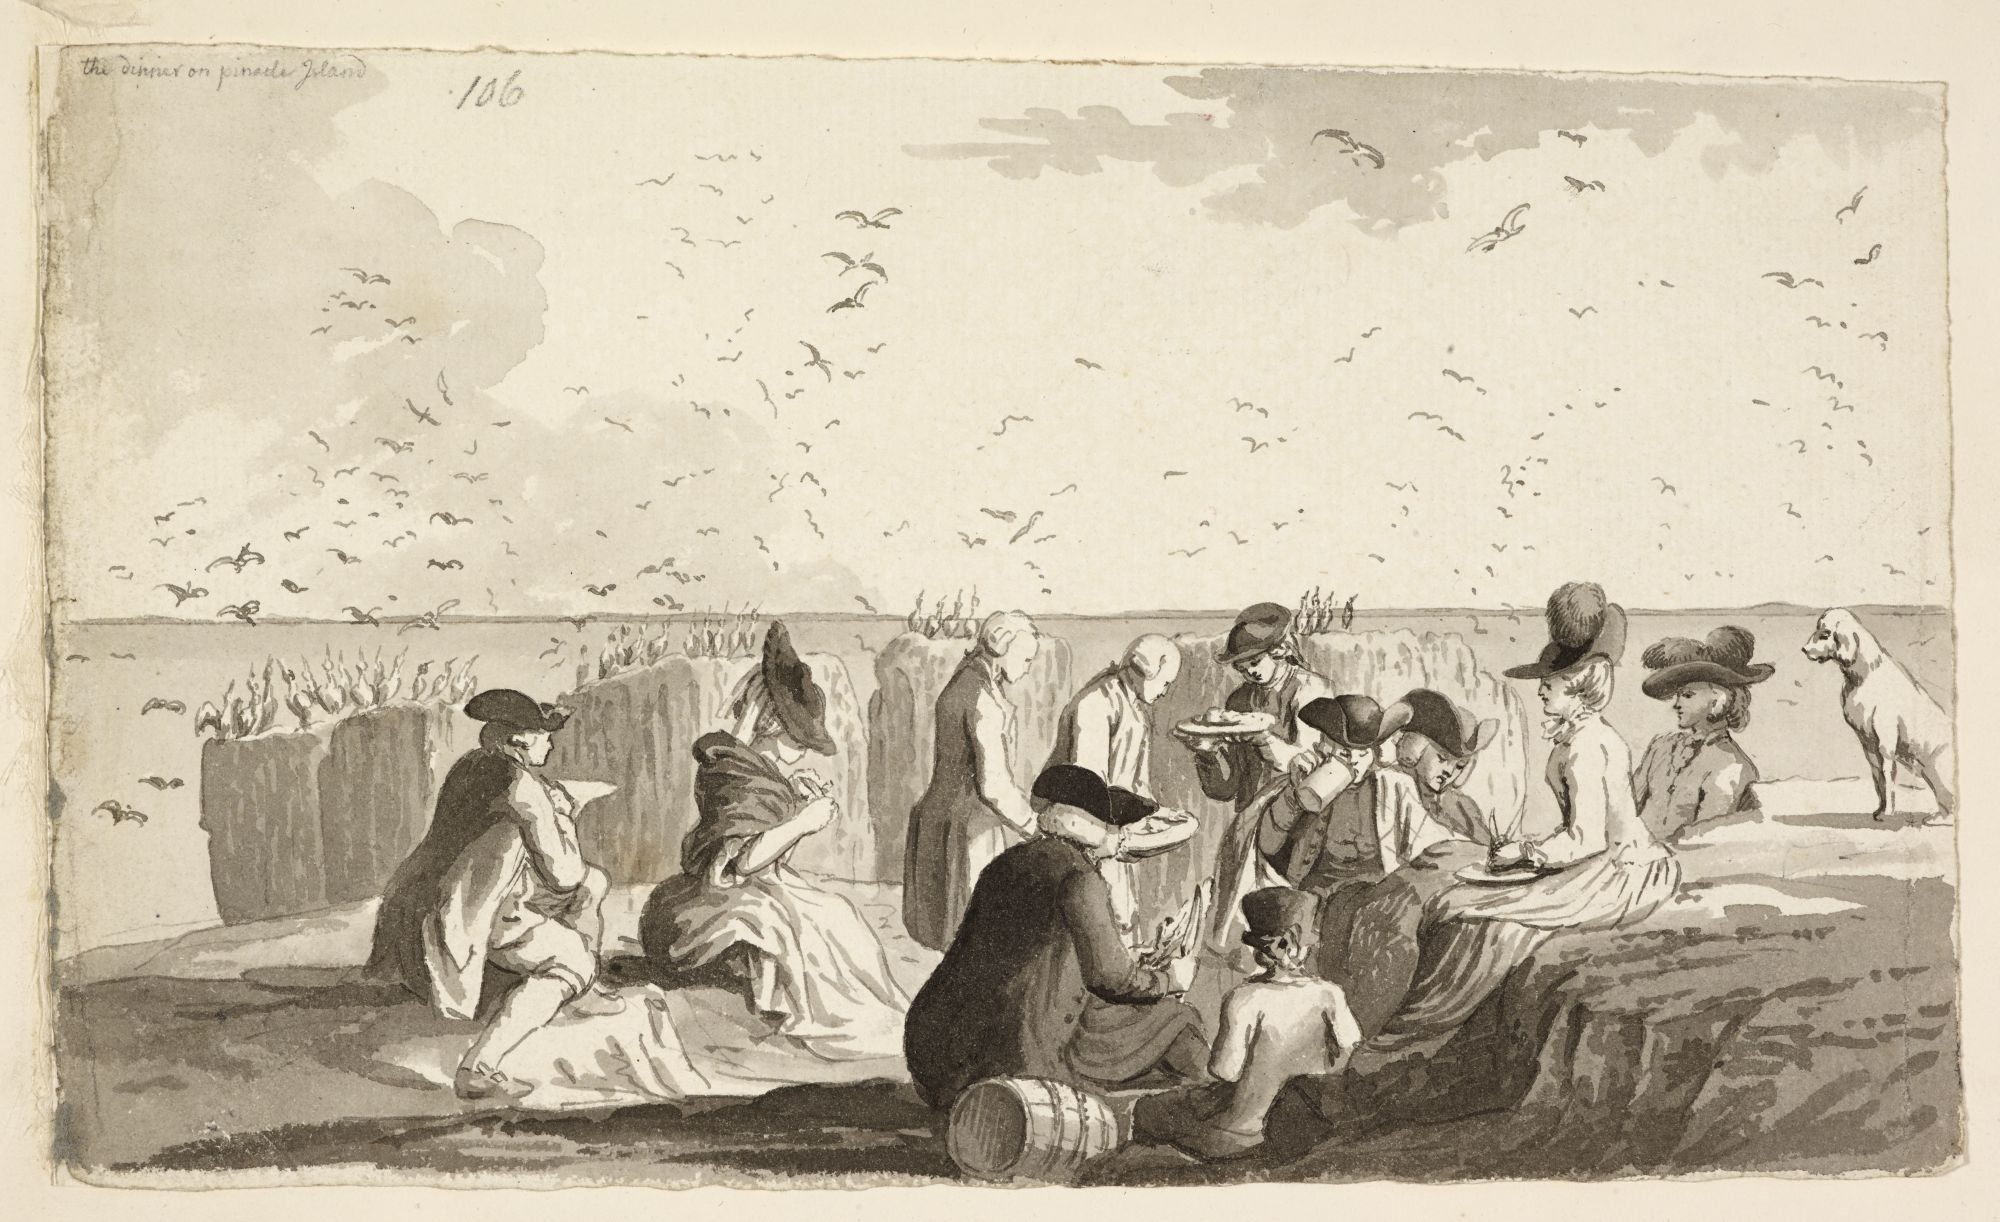 A view of a picnic on Staple Island by Samuel Hieronymus Grimm.